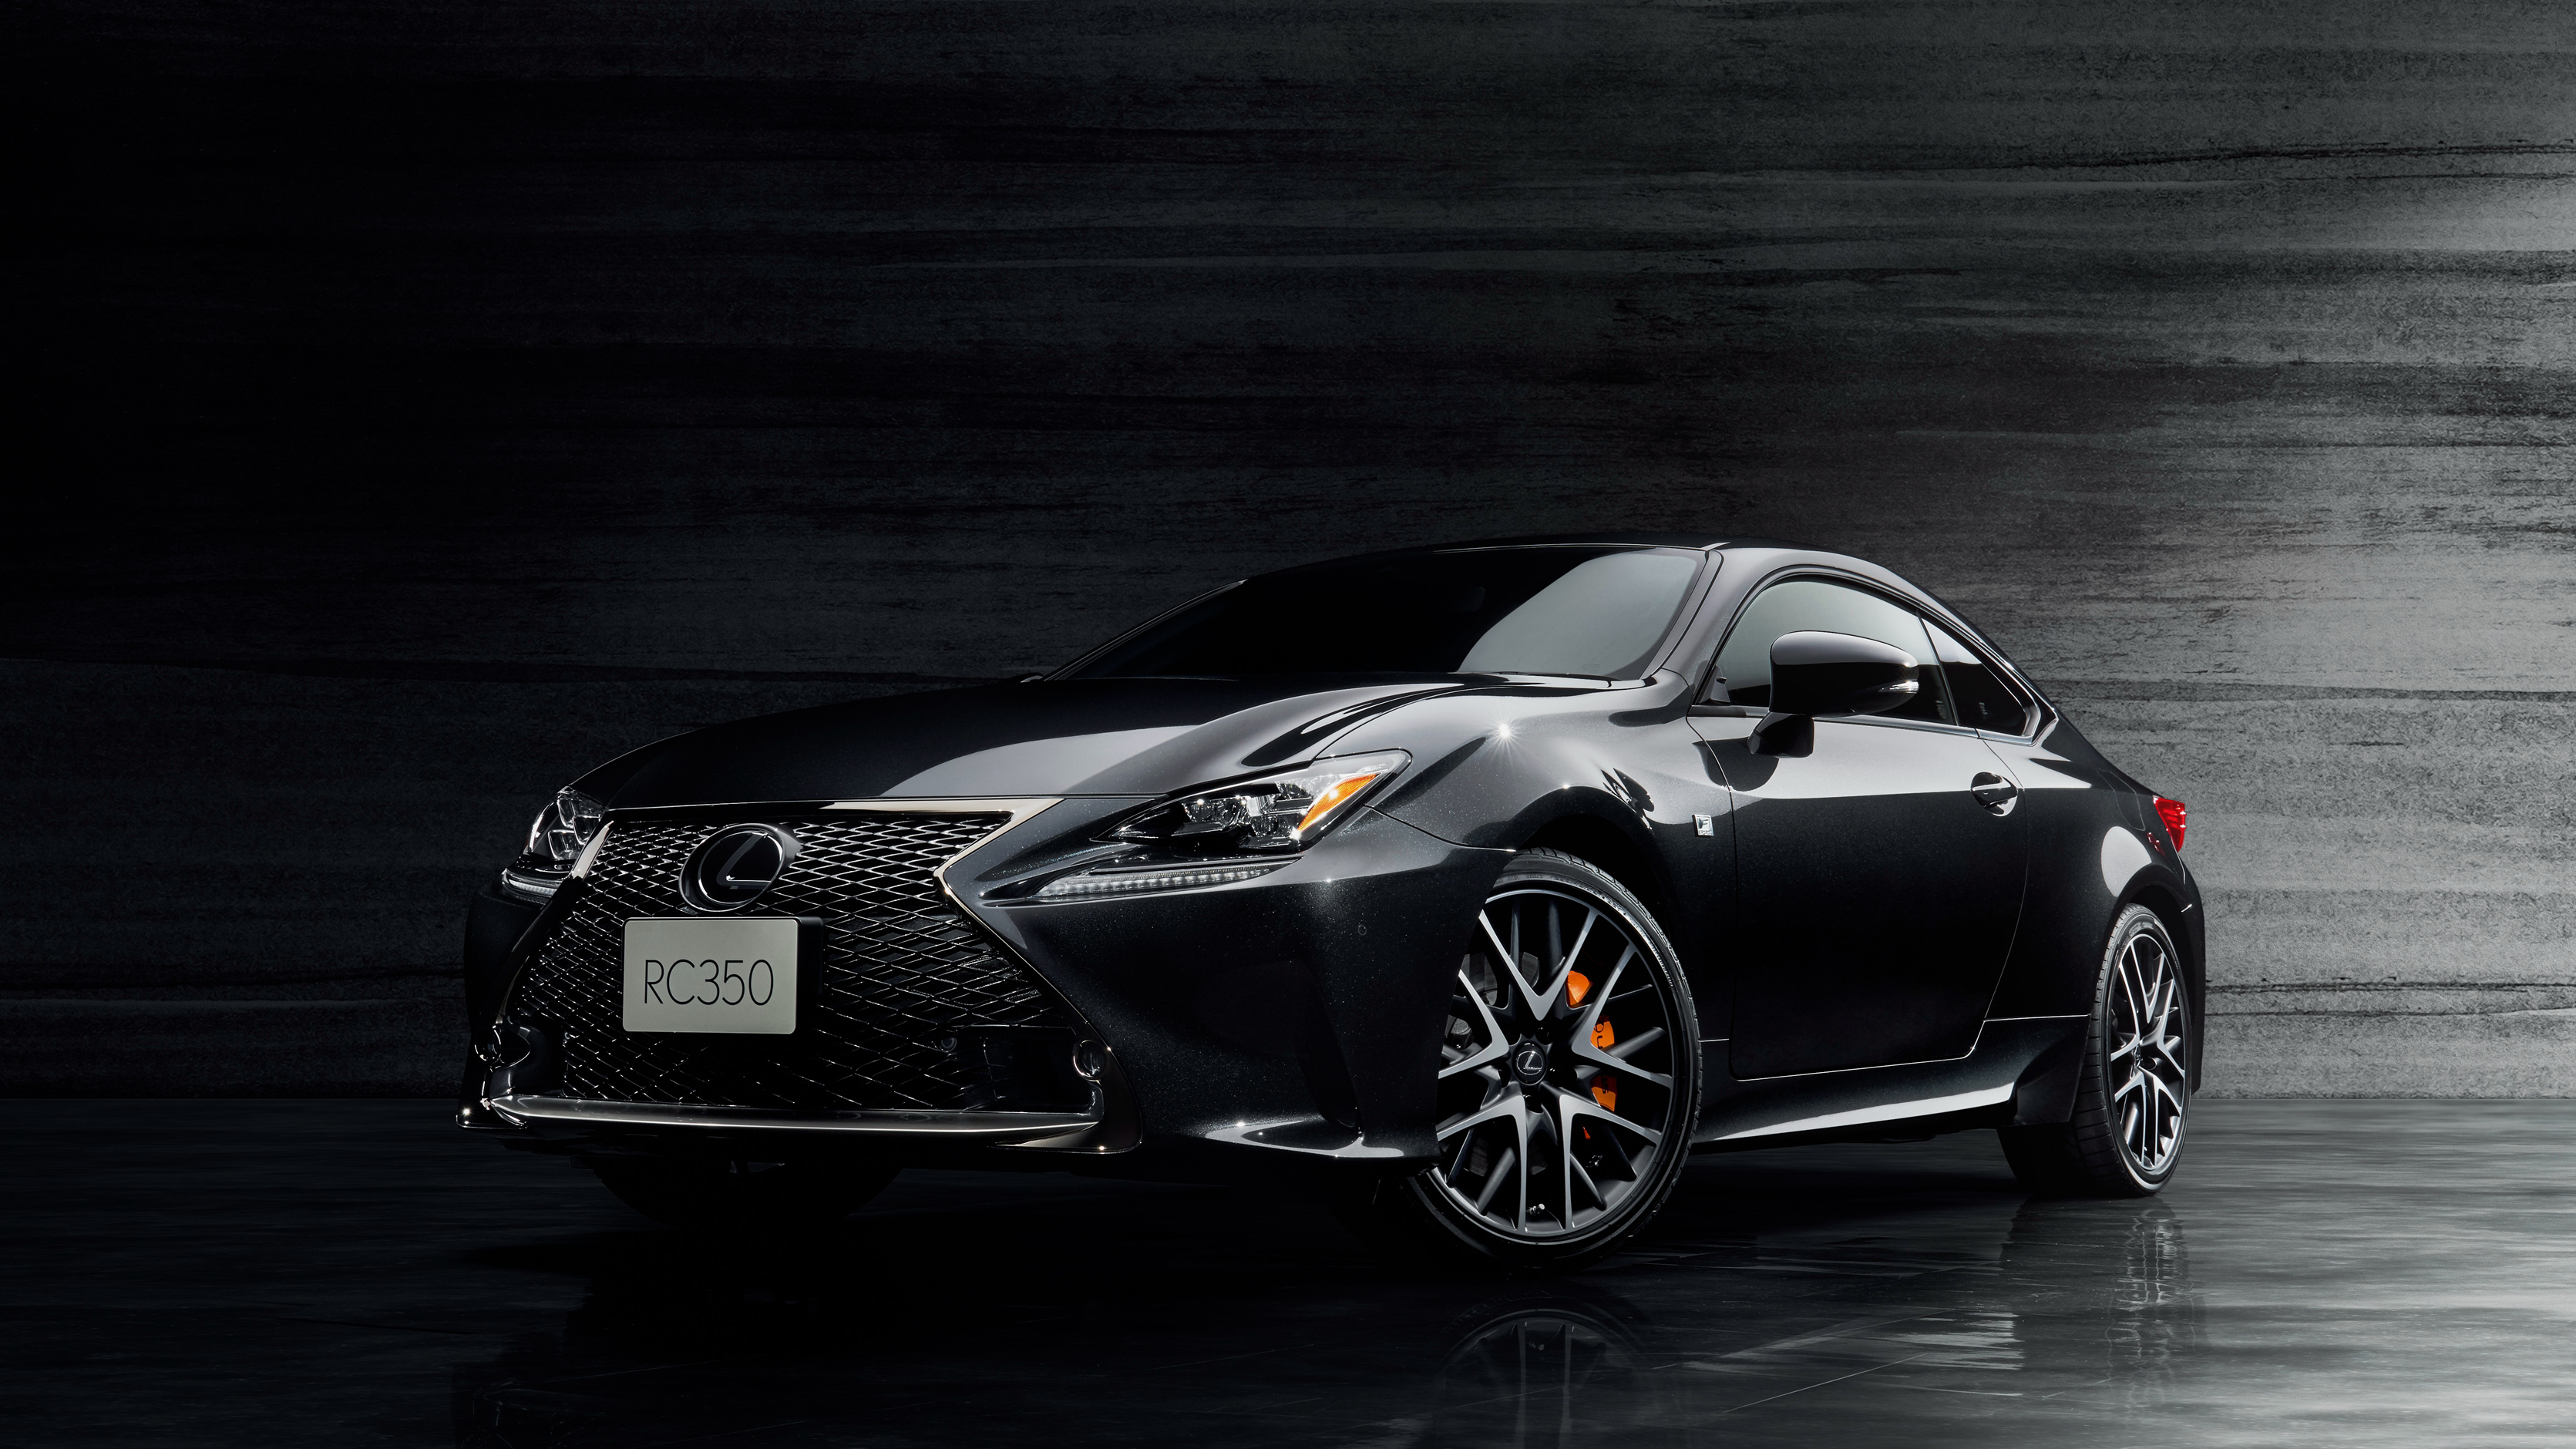 2017 Lexus RC 350 F SPORT Prime Black Wallpaper | HD Car ...